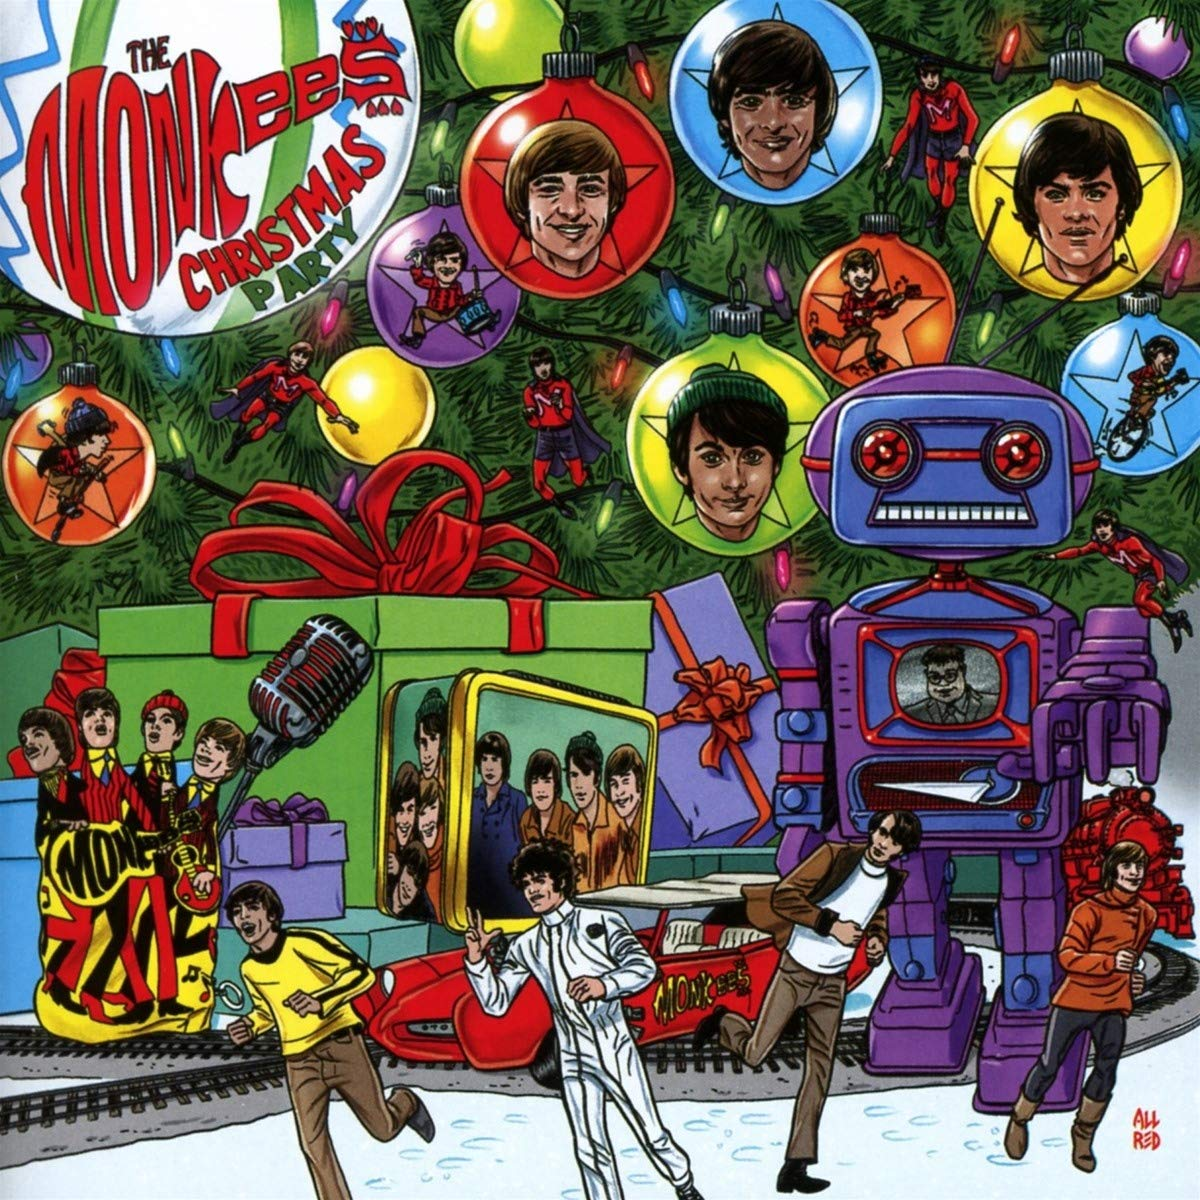 The Monkees - Christmas Party - Amazon.com Music